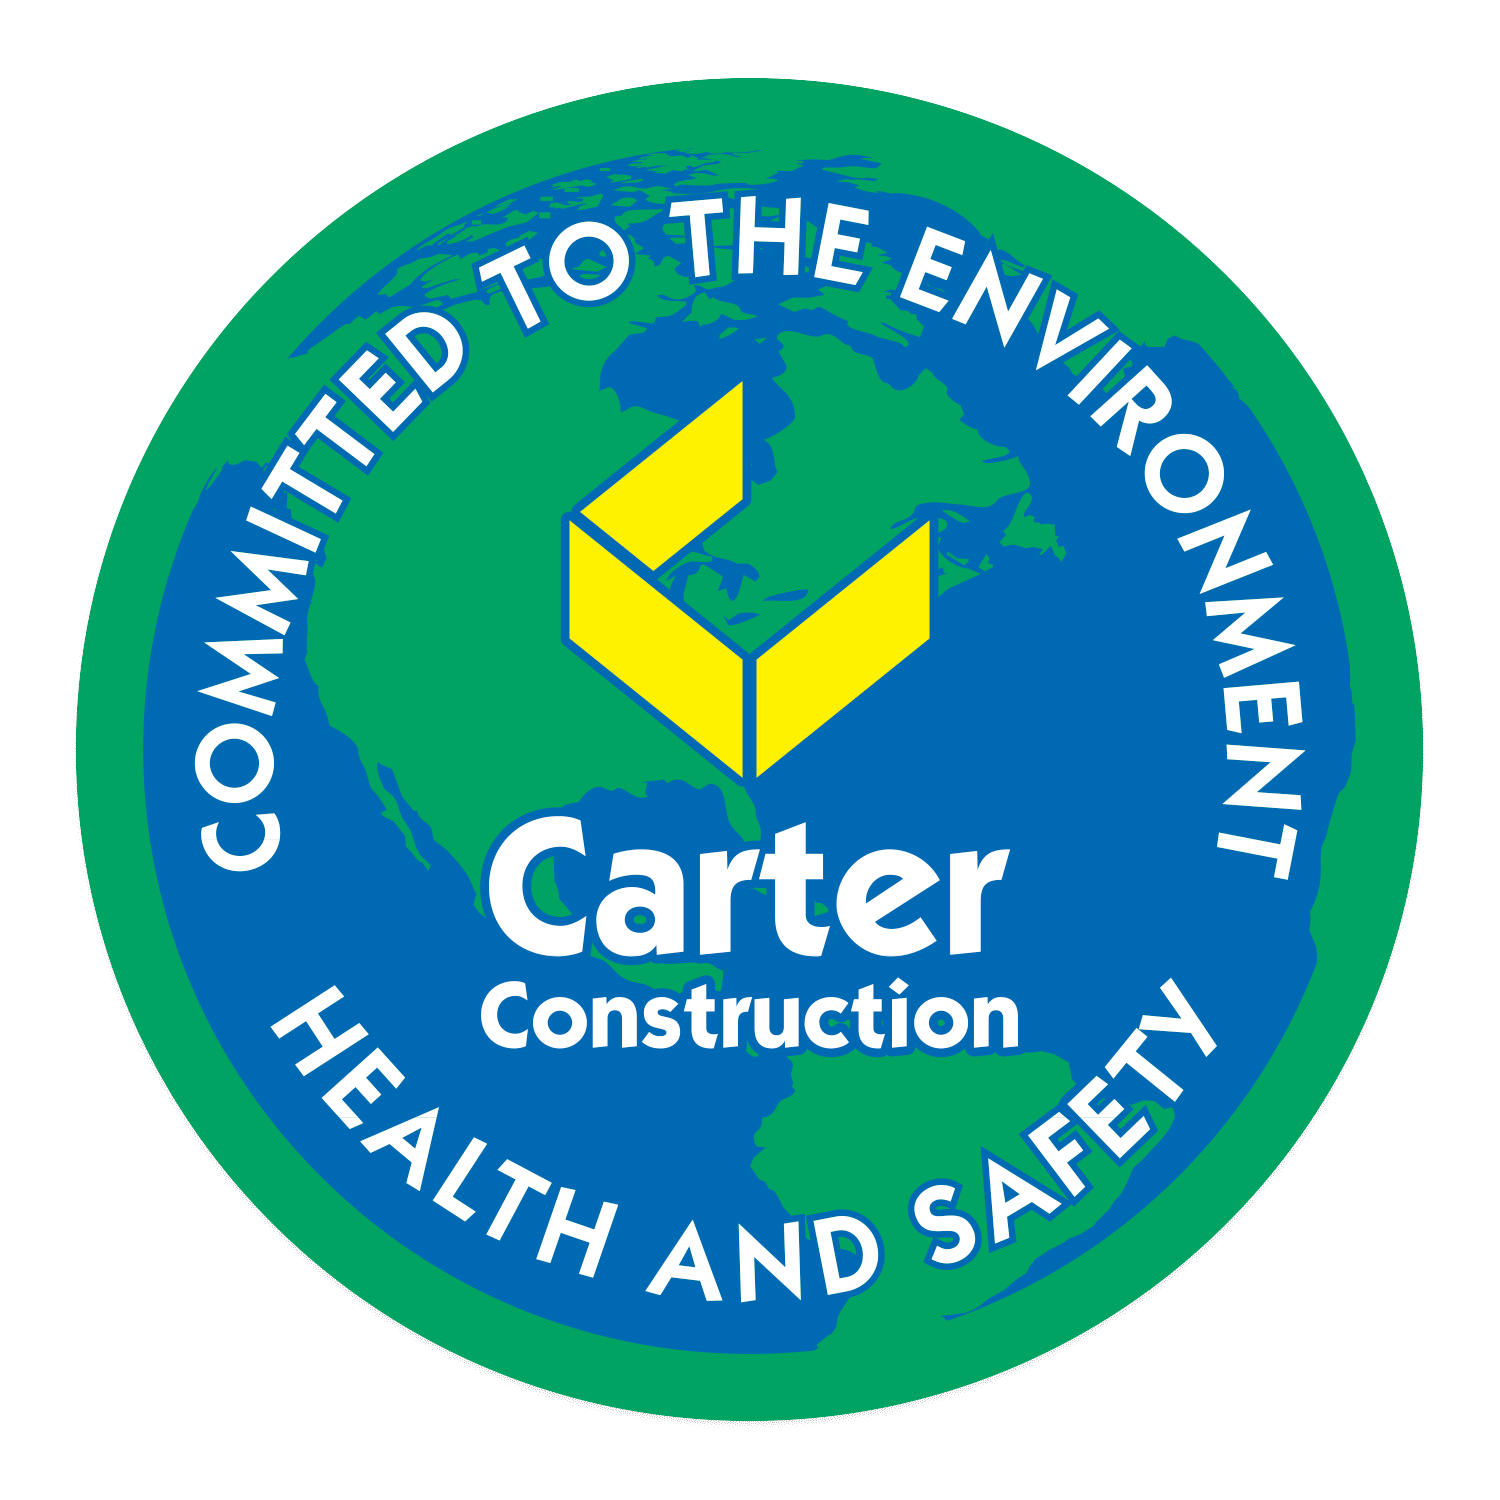 https://www.sswprinting.com/images/products_gallery_images/13501_Carter-Construction_hi-res.png